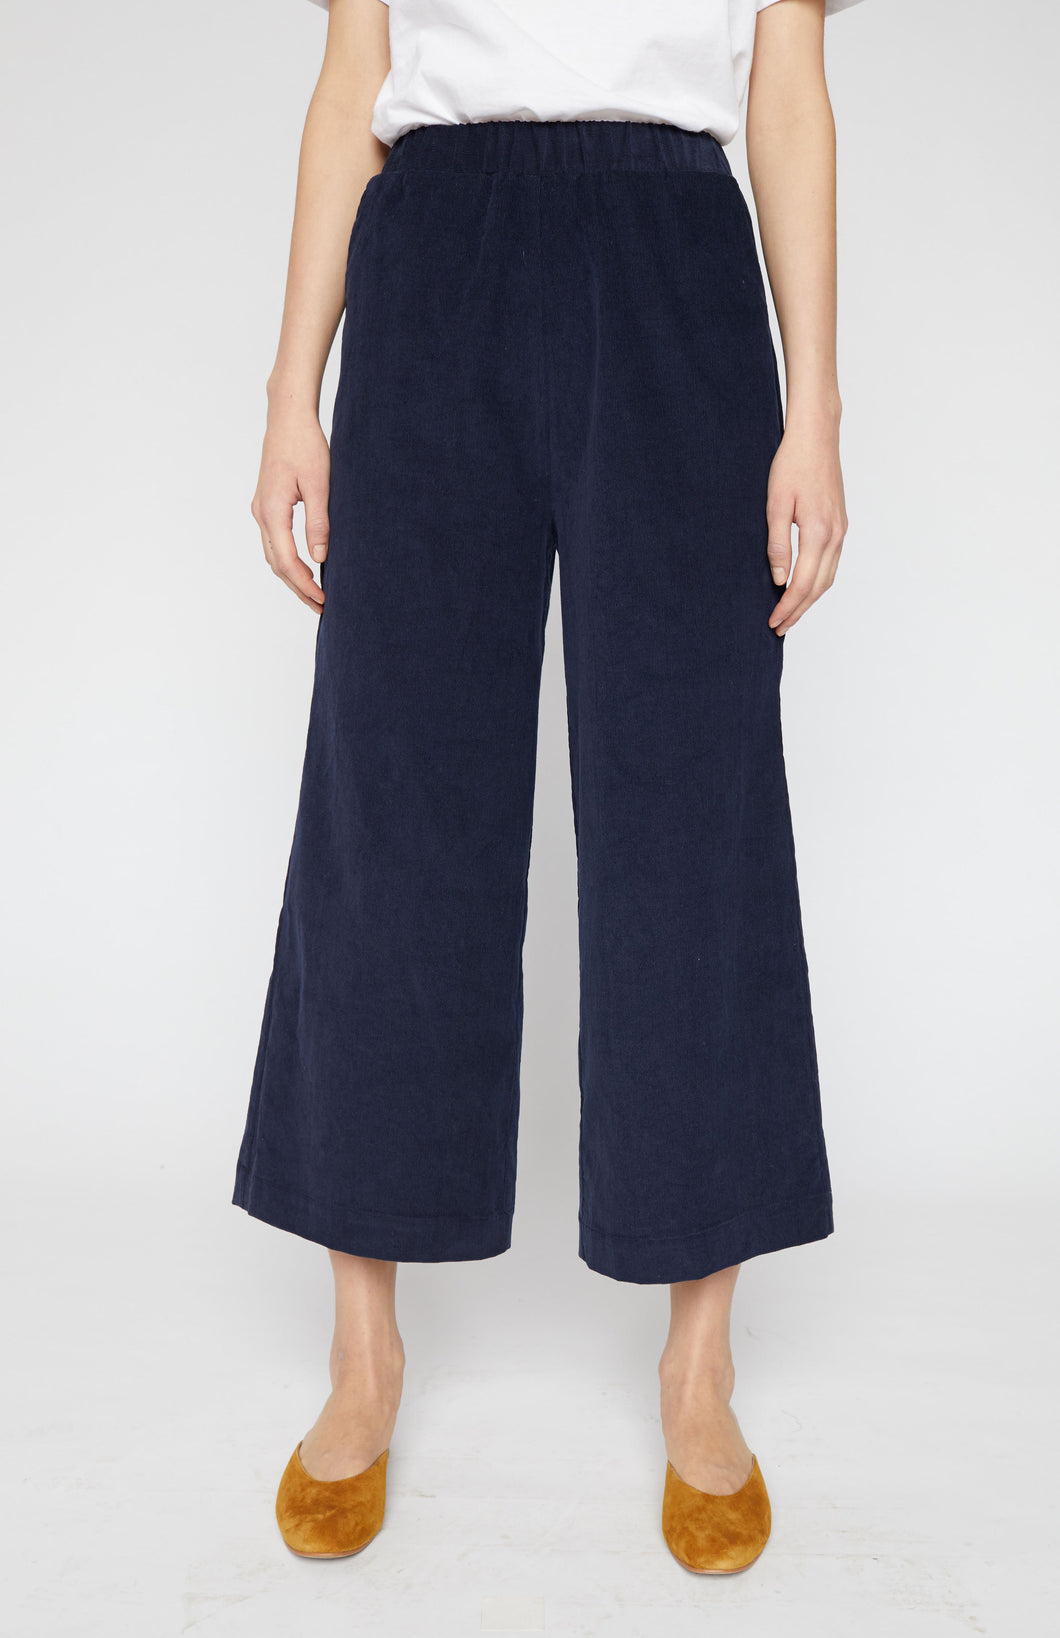 Wide Leg Pull-on Pants - Fine Corduroy